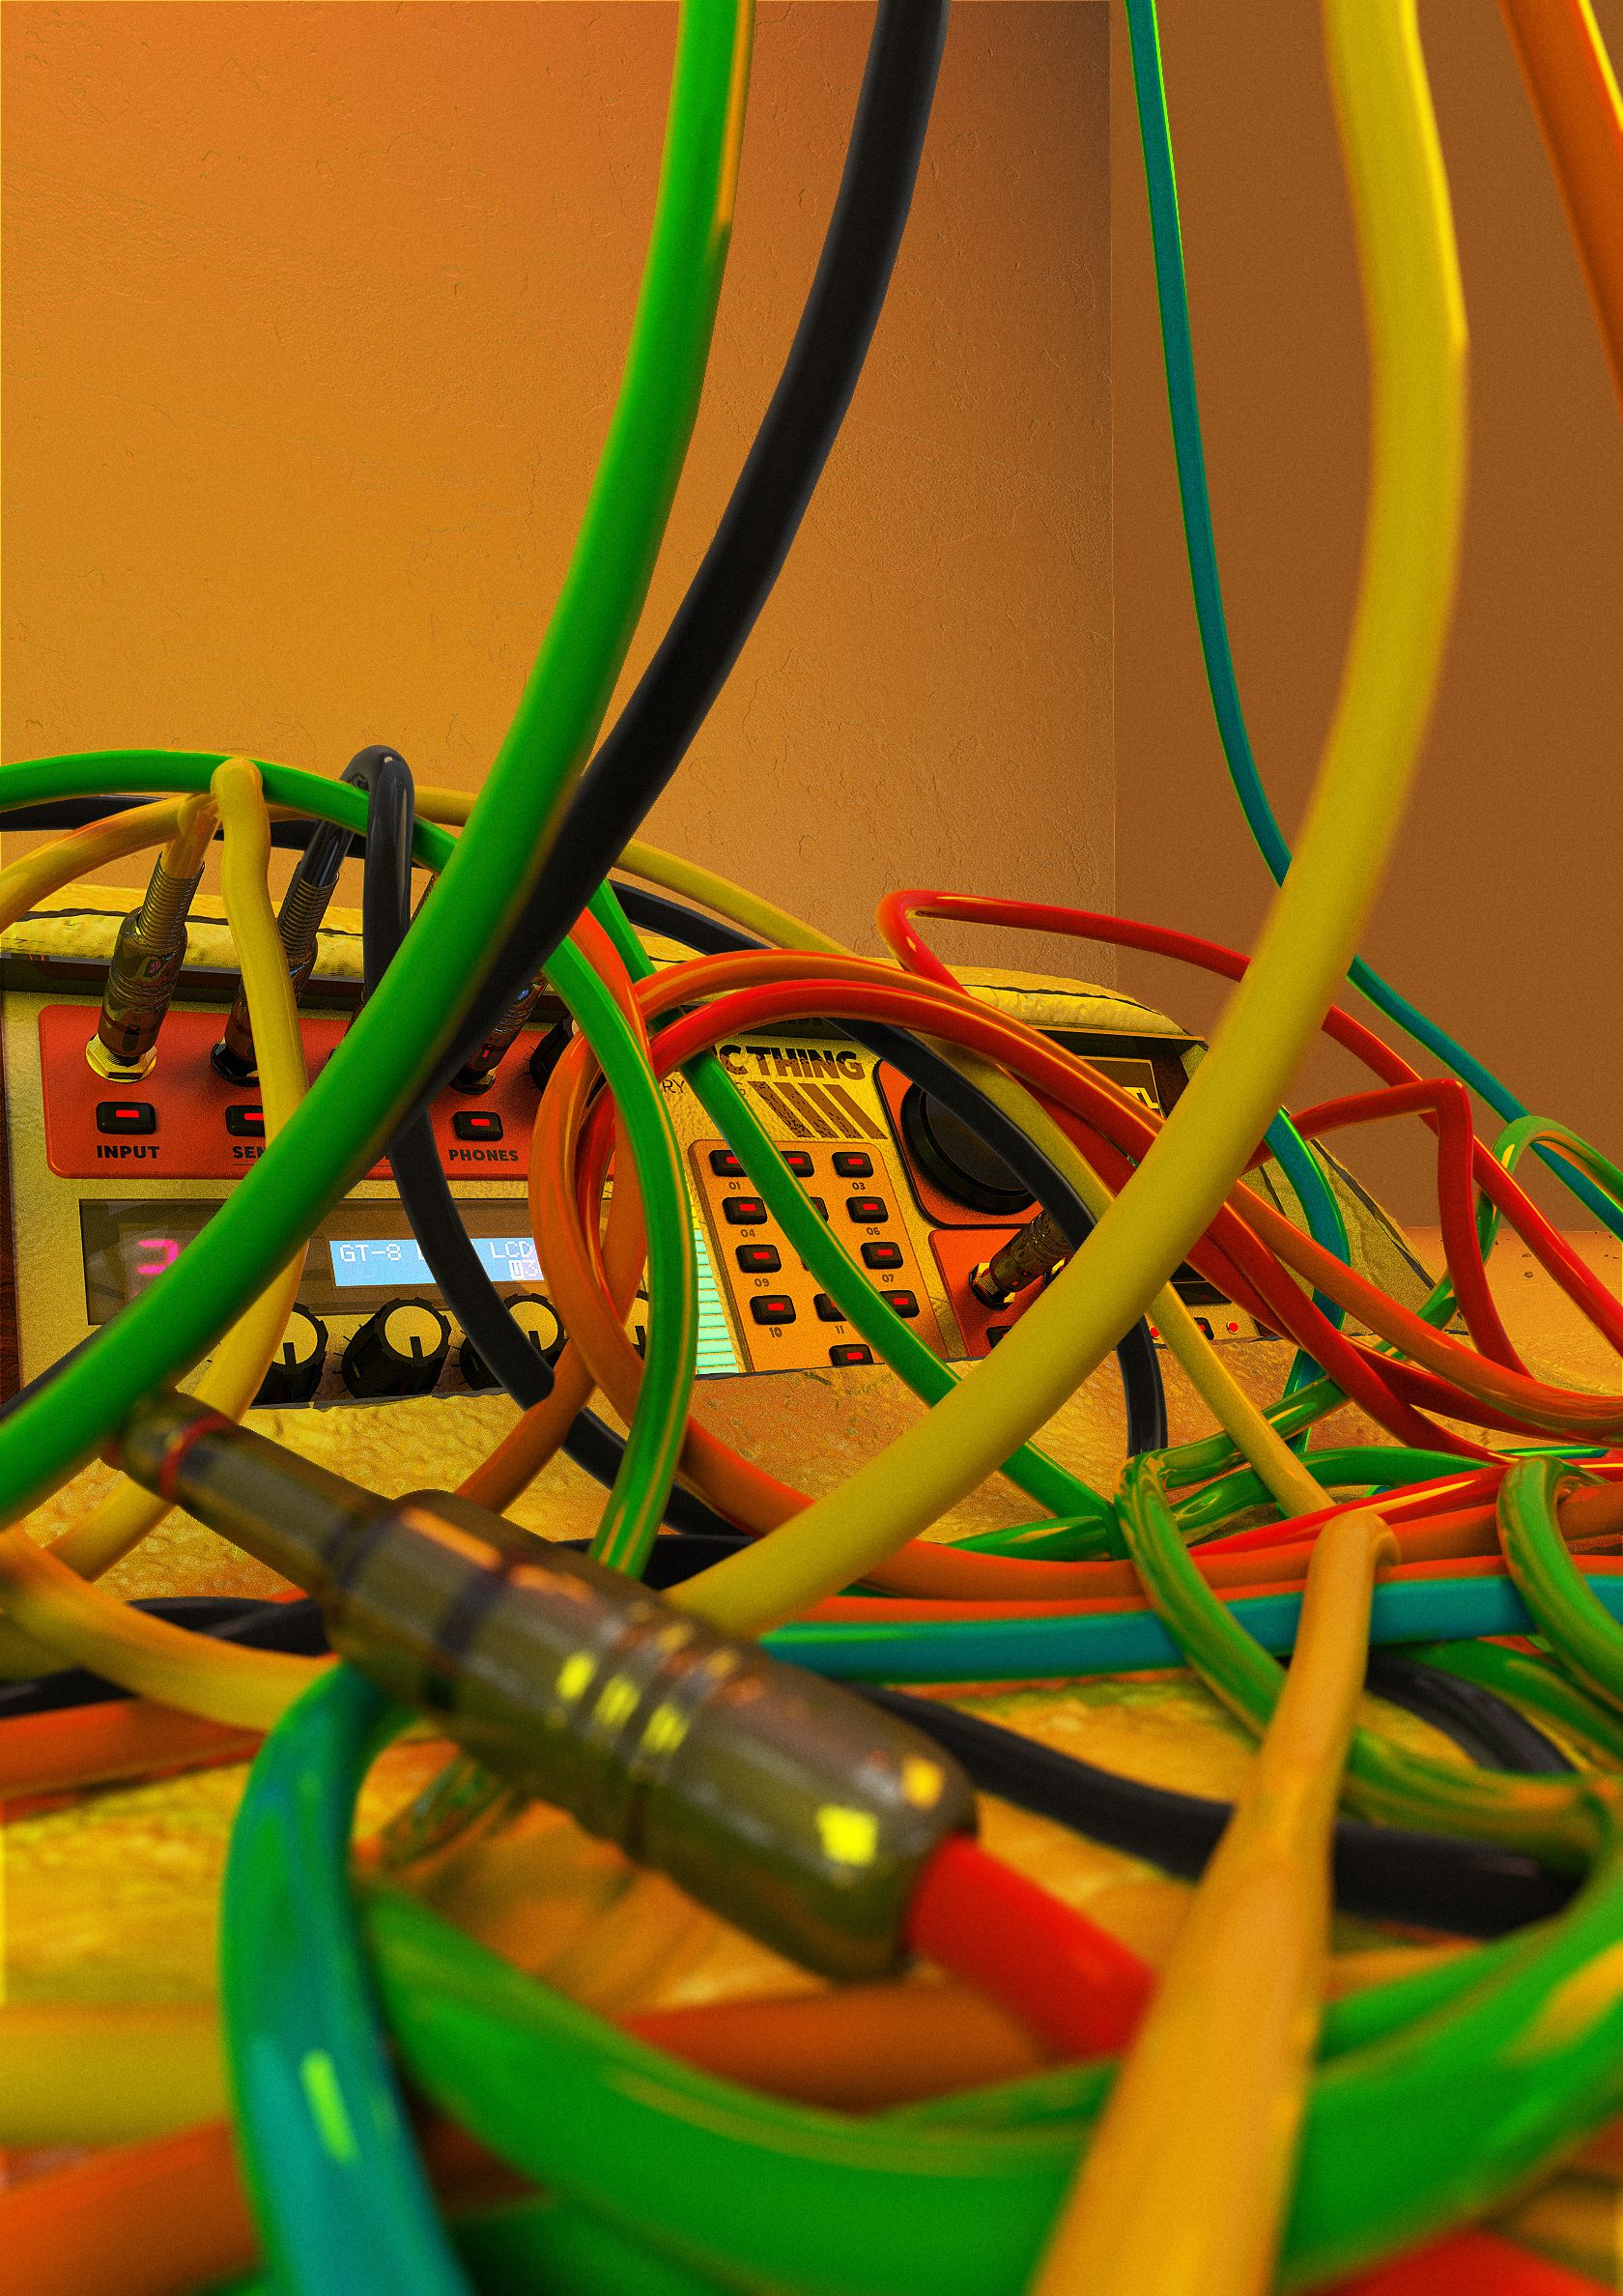 hight resolution of crazy wires experiments in spline dynamics